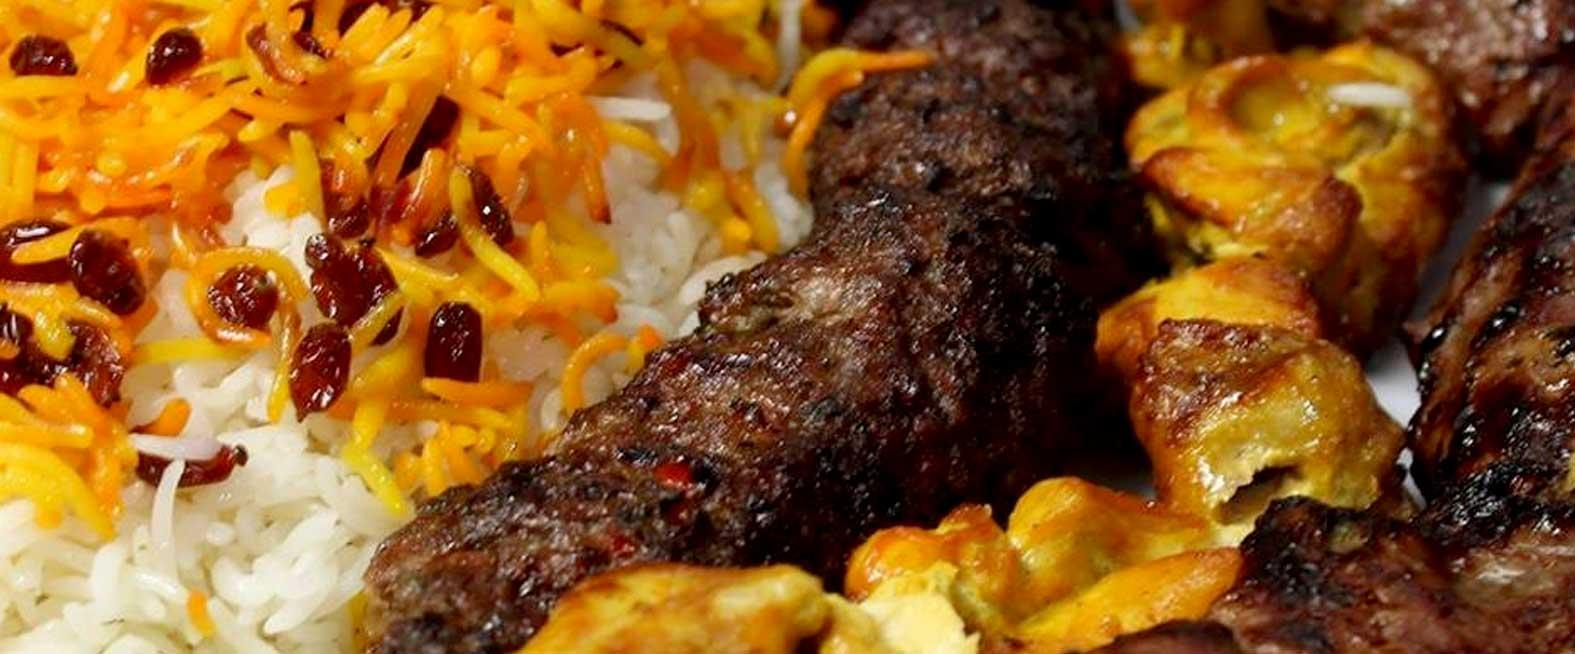 Prince Of Persia Restaurant & Takeaway